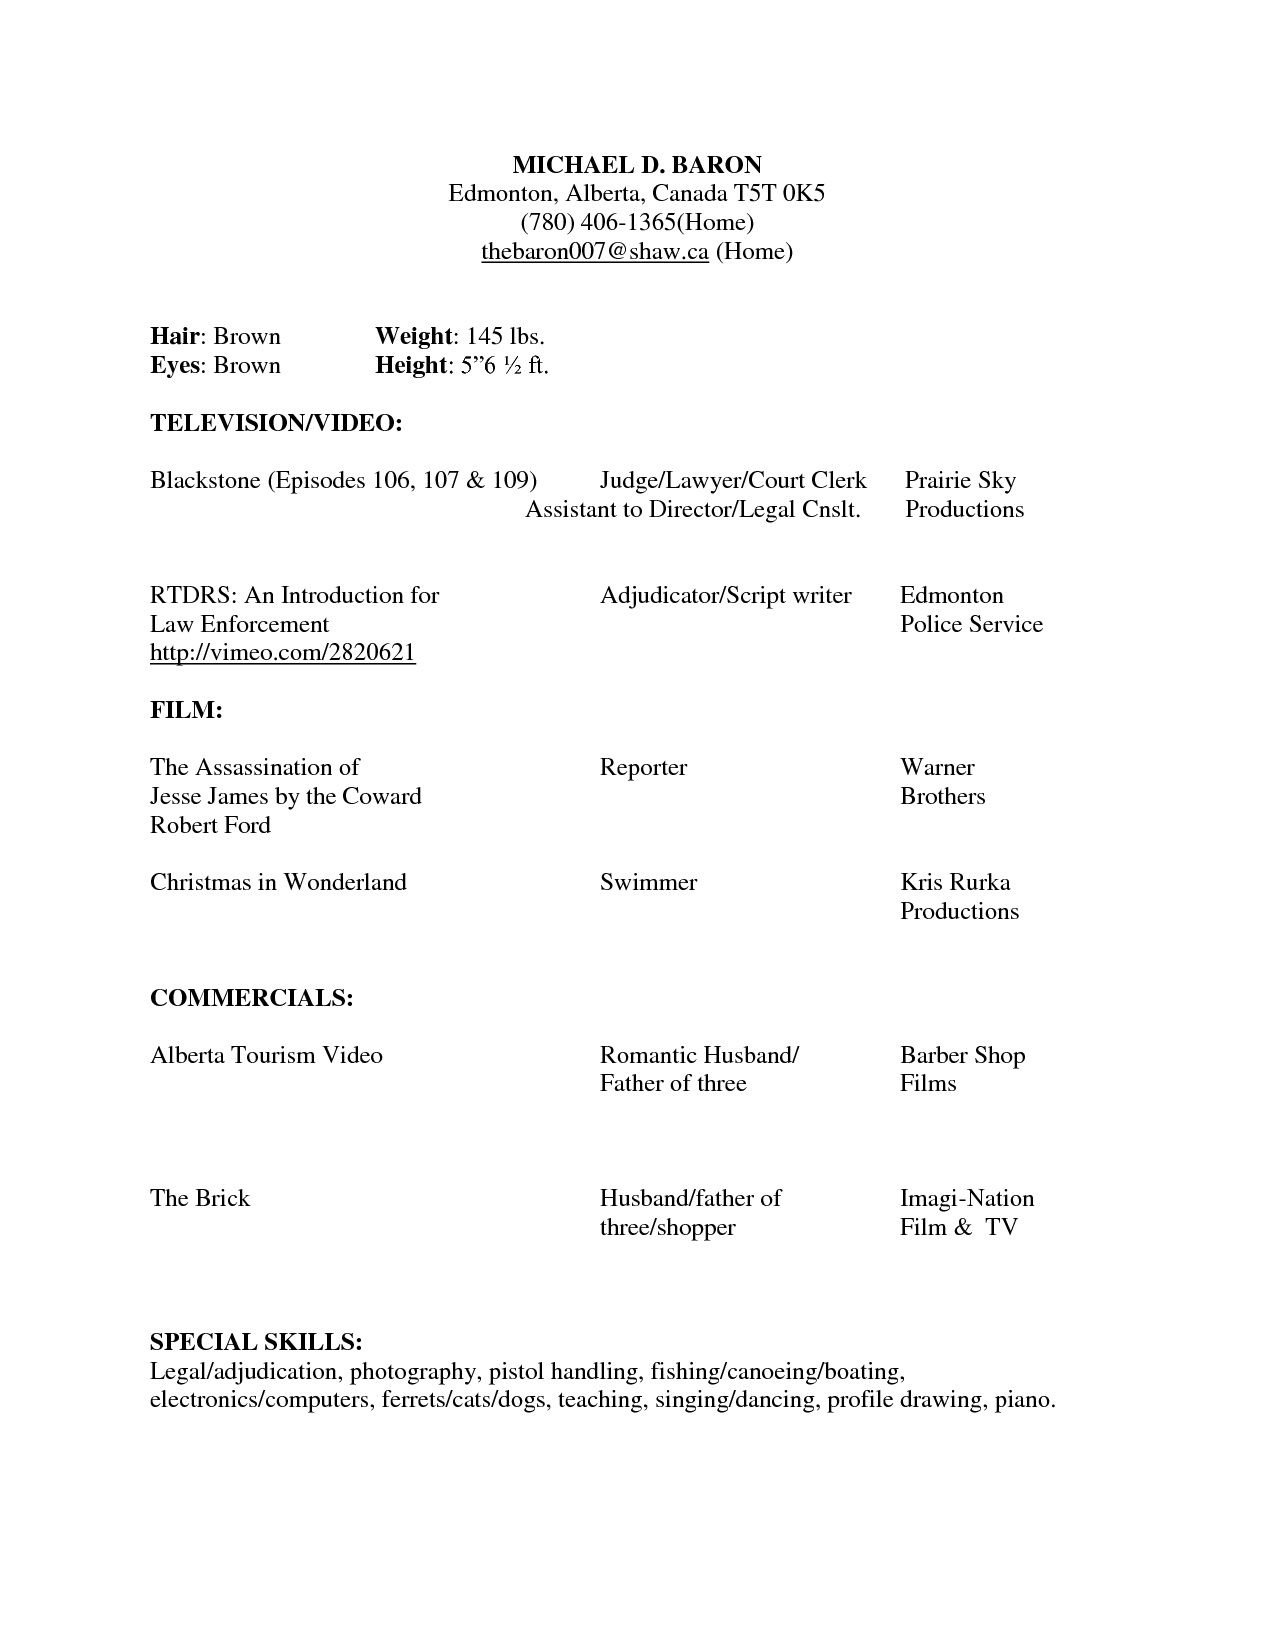 academic resume sample shows you how to make academic resume beginner acting resume sample are examples we provide as reference to make correct and good quality resume also will give ideas and strategies to develop